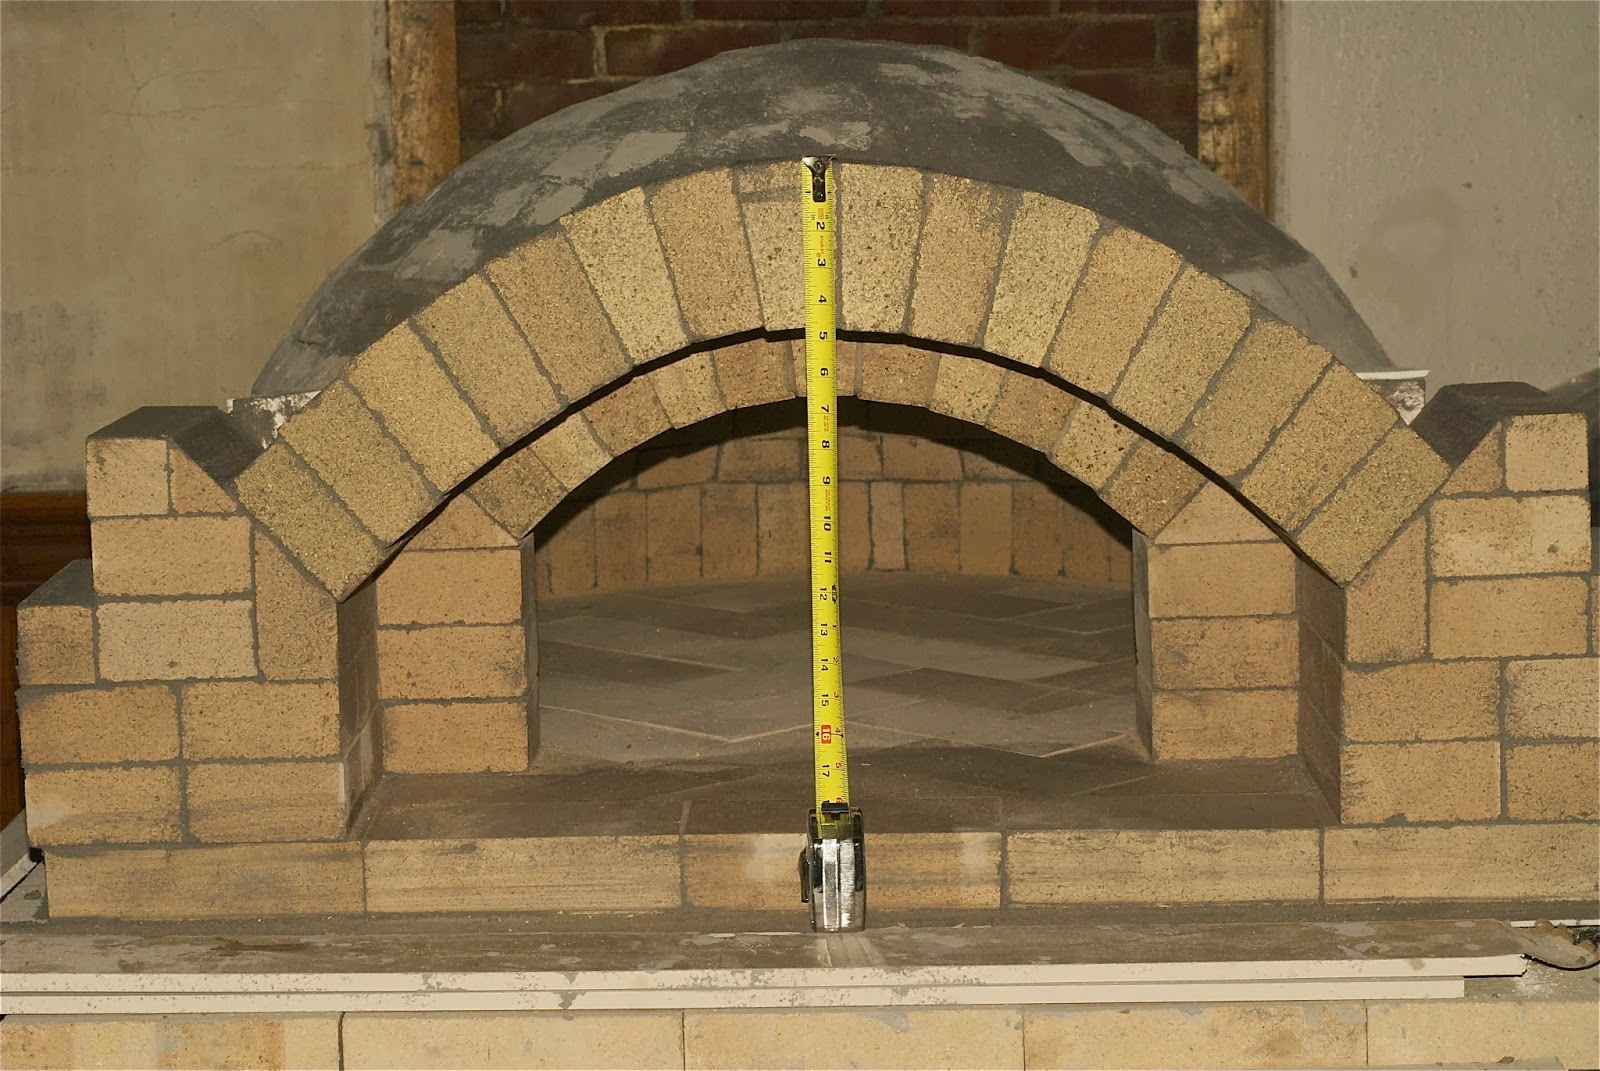 True Brick Ovens Brick Oven Dome Building Revisited